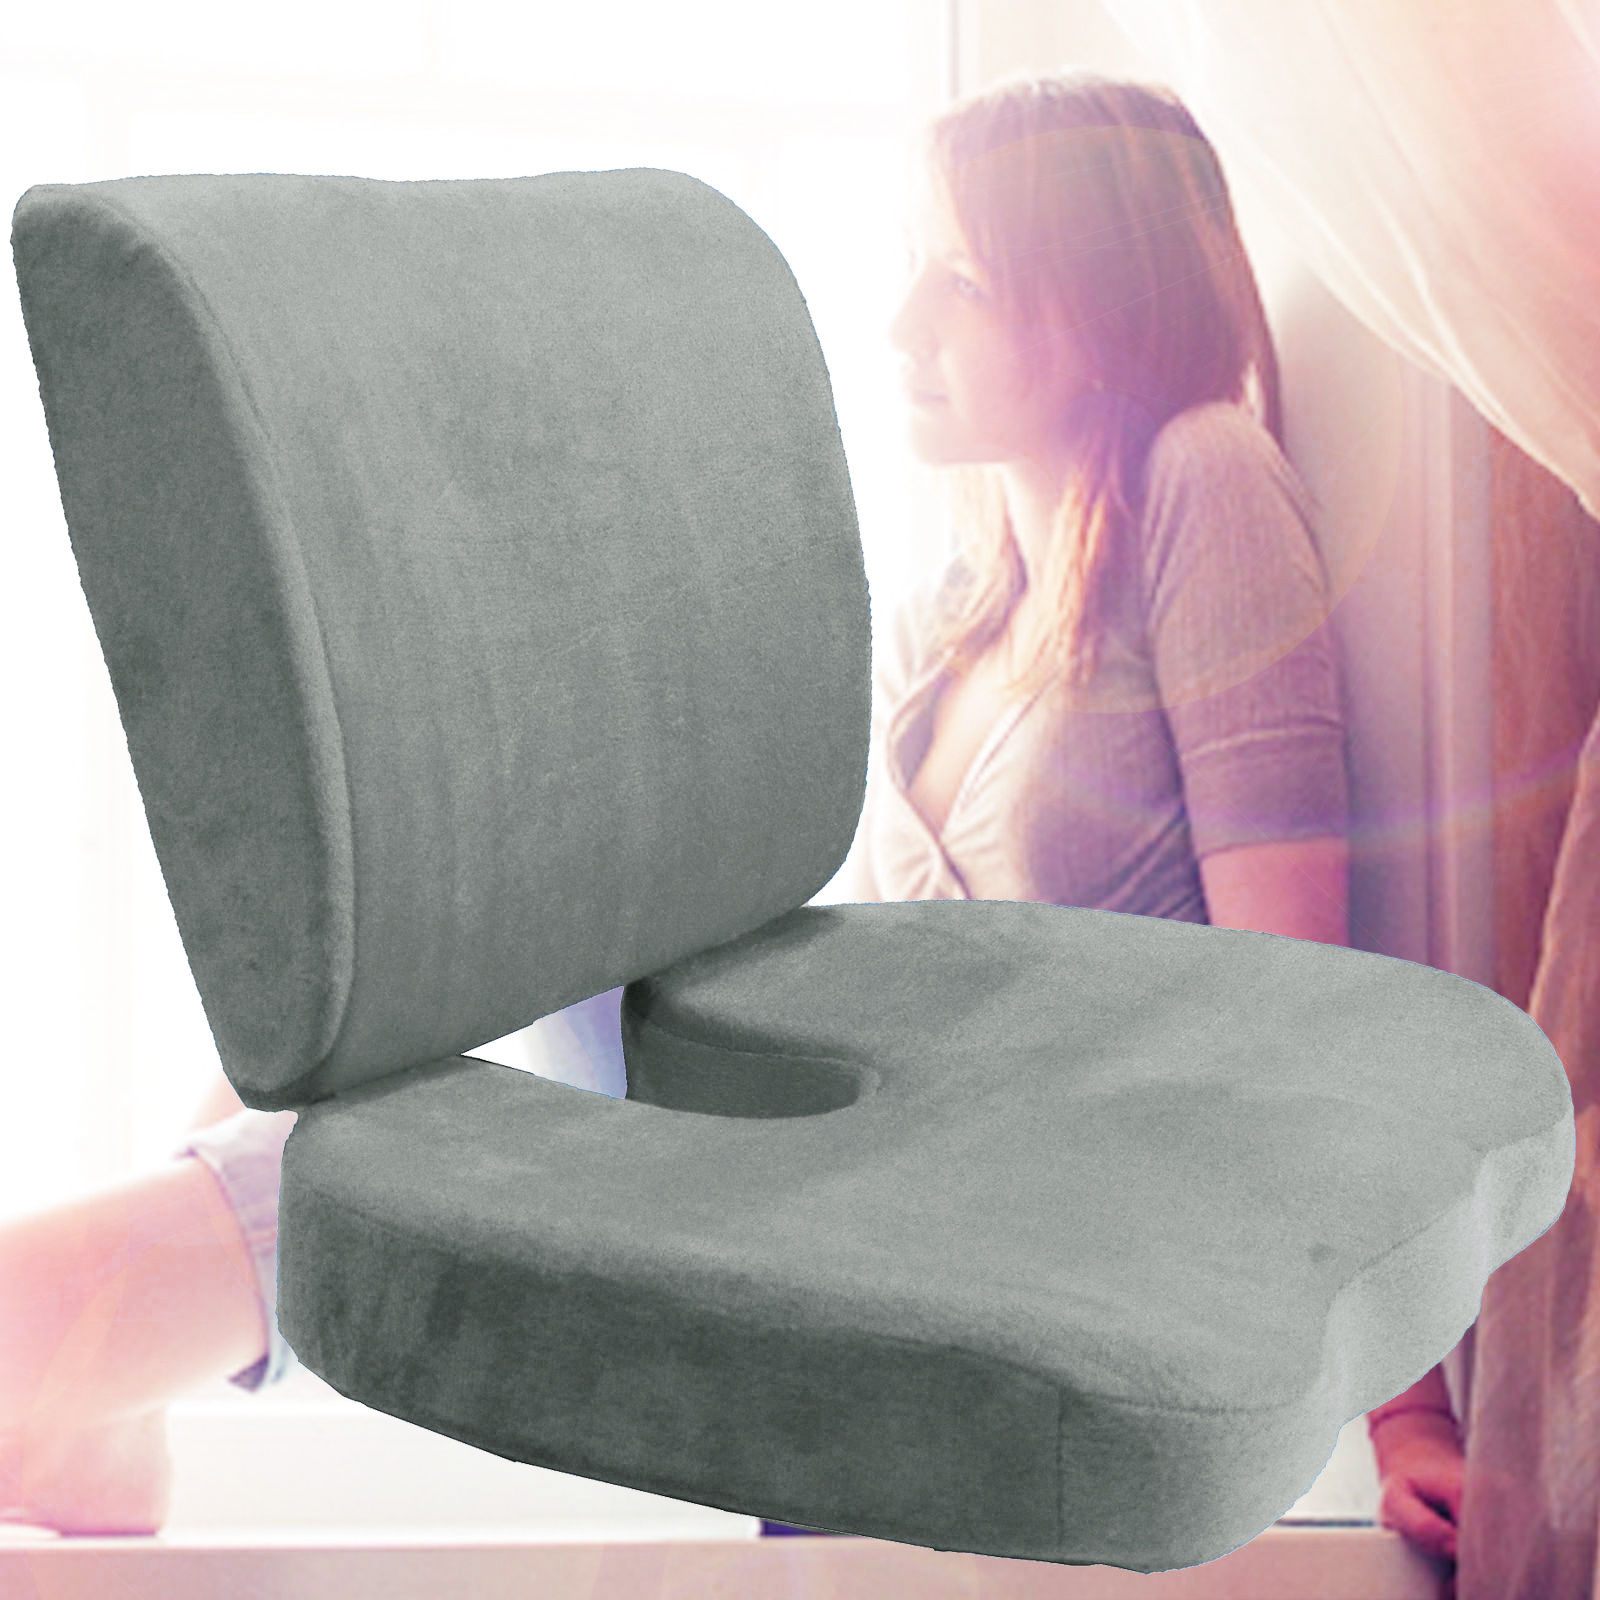 Memory Foam Back Lumbar & Coccyx Support Pillows Two Piece Set Sciatica & Pain Relief Seat Chair or Car Cushion Gray